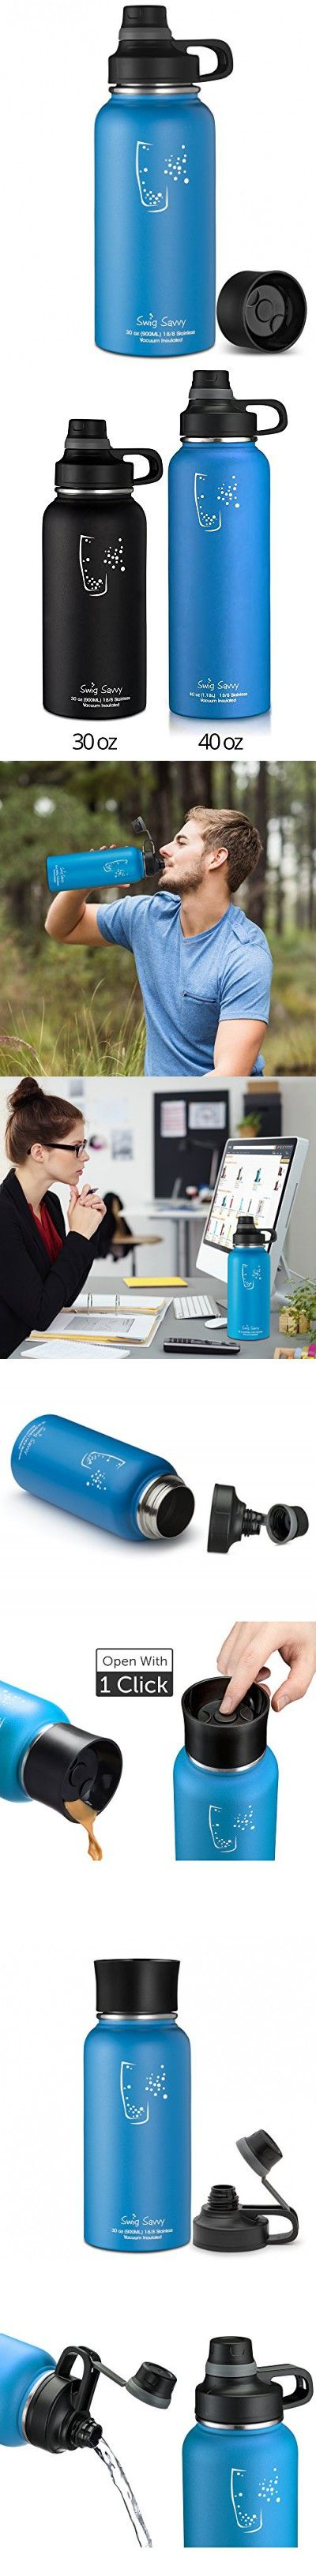 Swig Savvy BPA-Free Leak-Proof Stainless Steel Wide Mouth Insulated Water Bottle with Interchangeable Caps, 30 oz, Blue